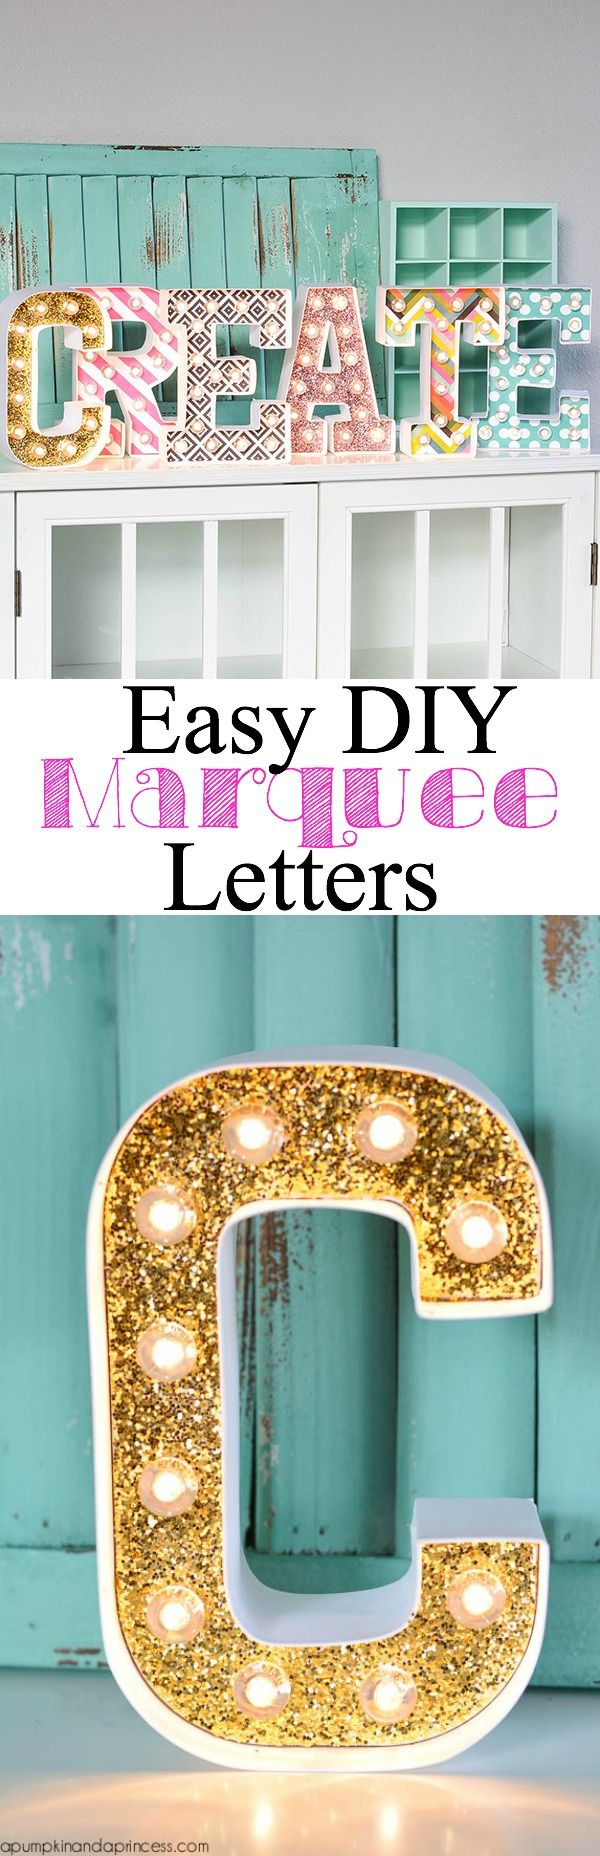 diy marquee letters diy letter ideas amp tutorials hative 21387